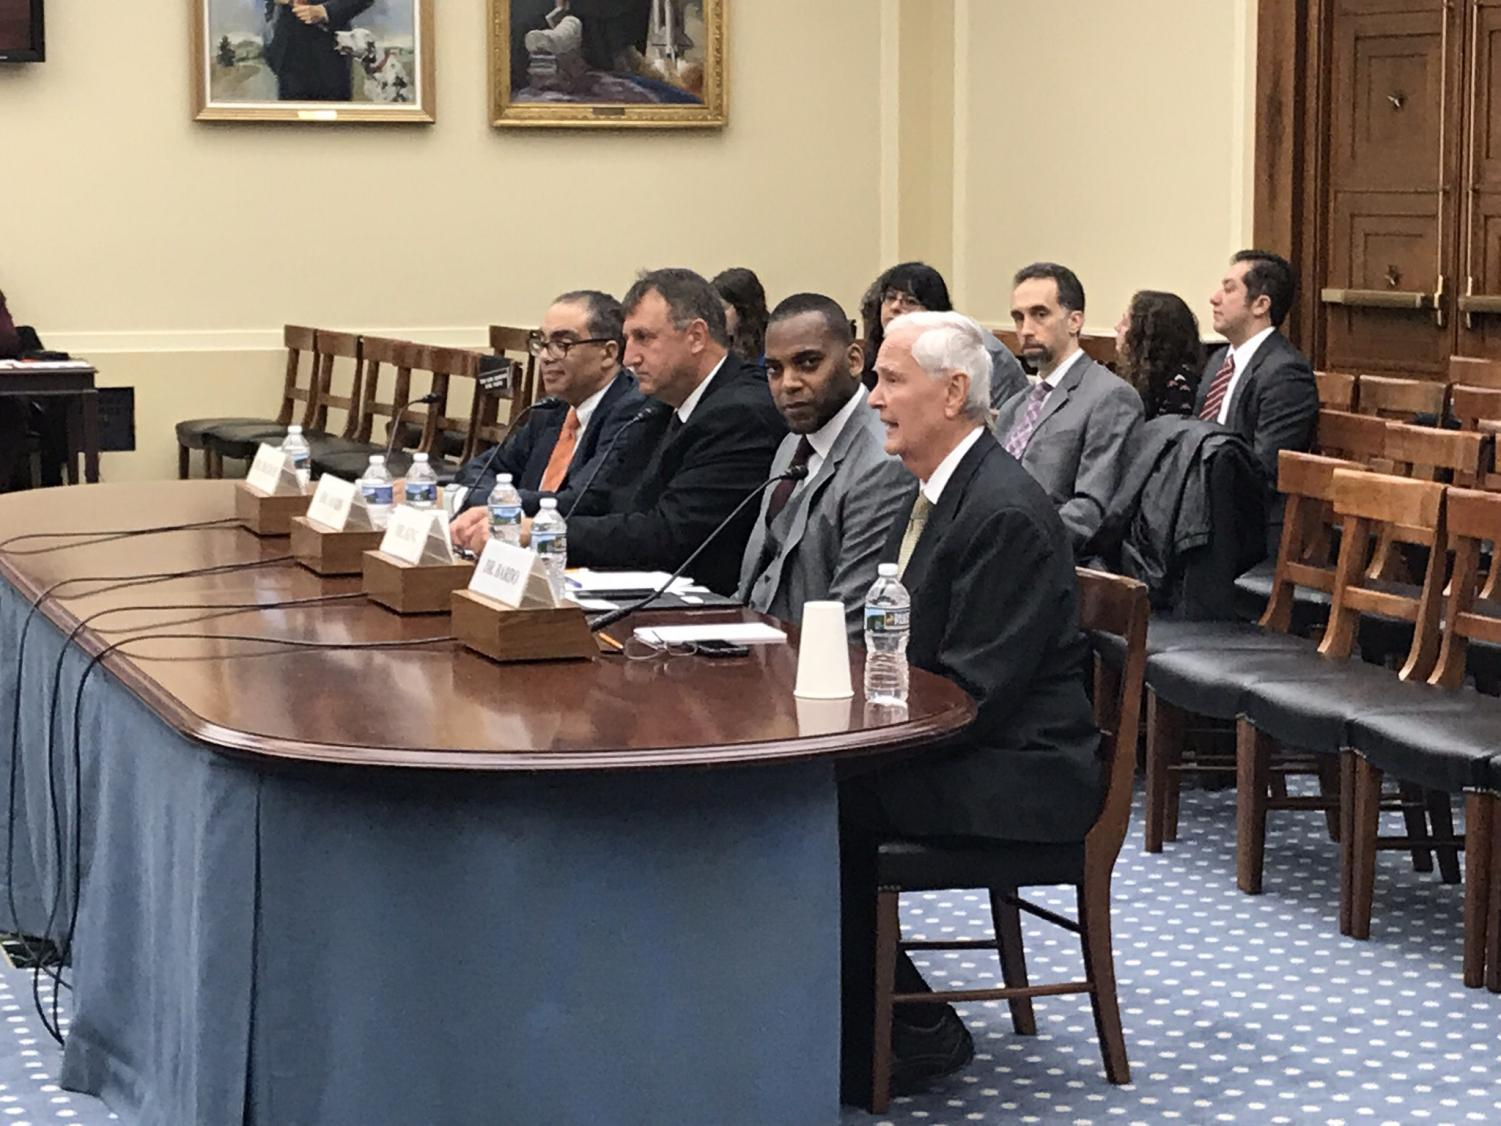 WSU President John Bardo, front, delivers testimony before the U.S. House Research and Technology Subcommittee.